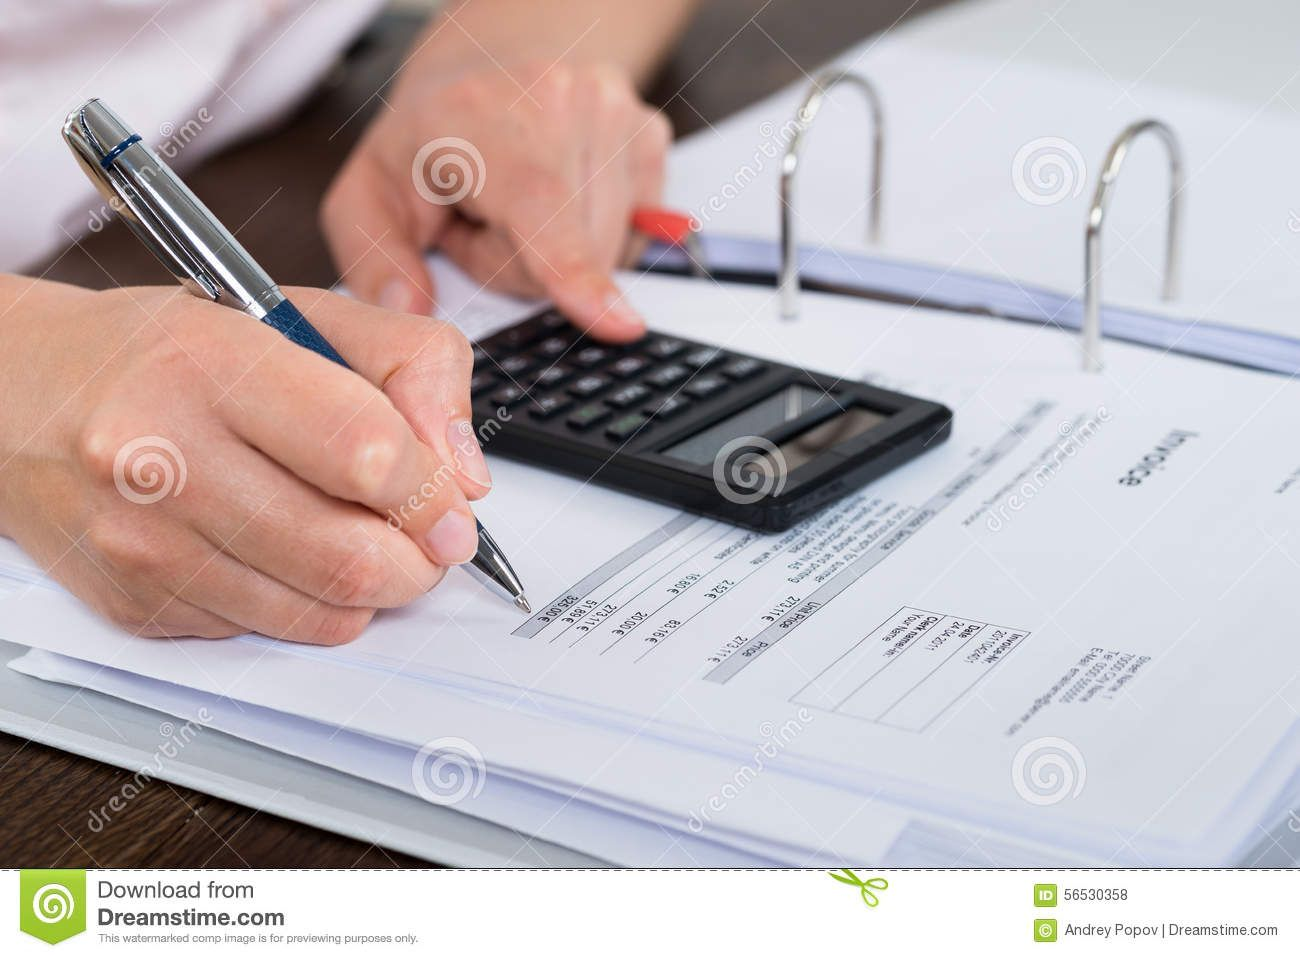 Accountant Doing Calculation Stock Photo Image of